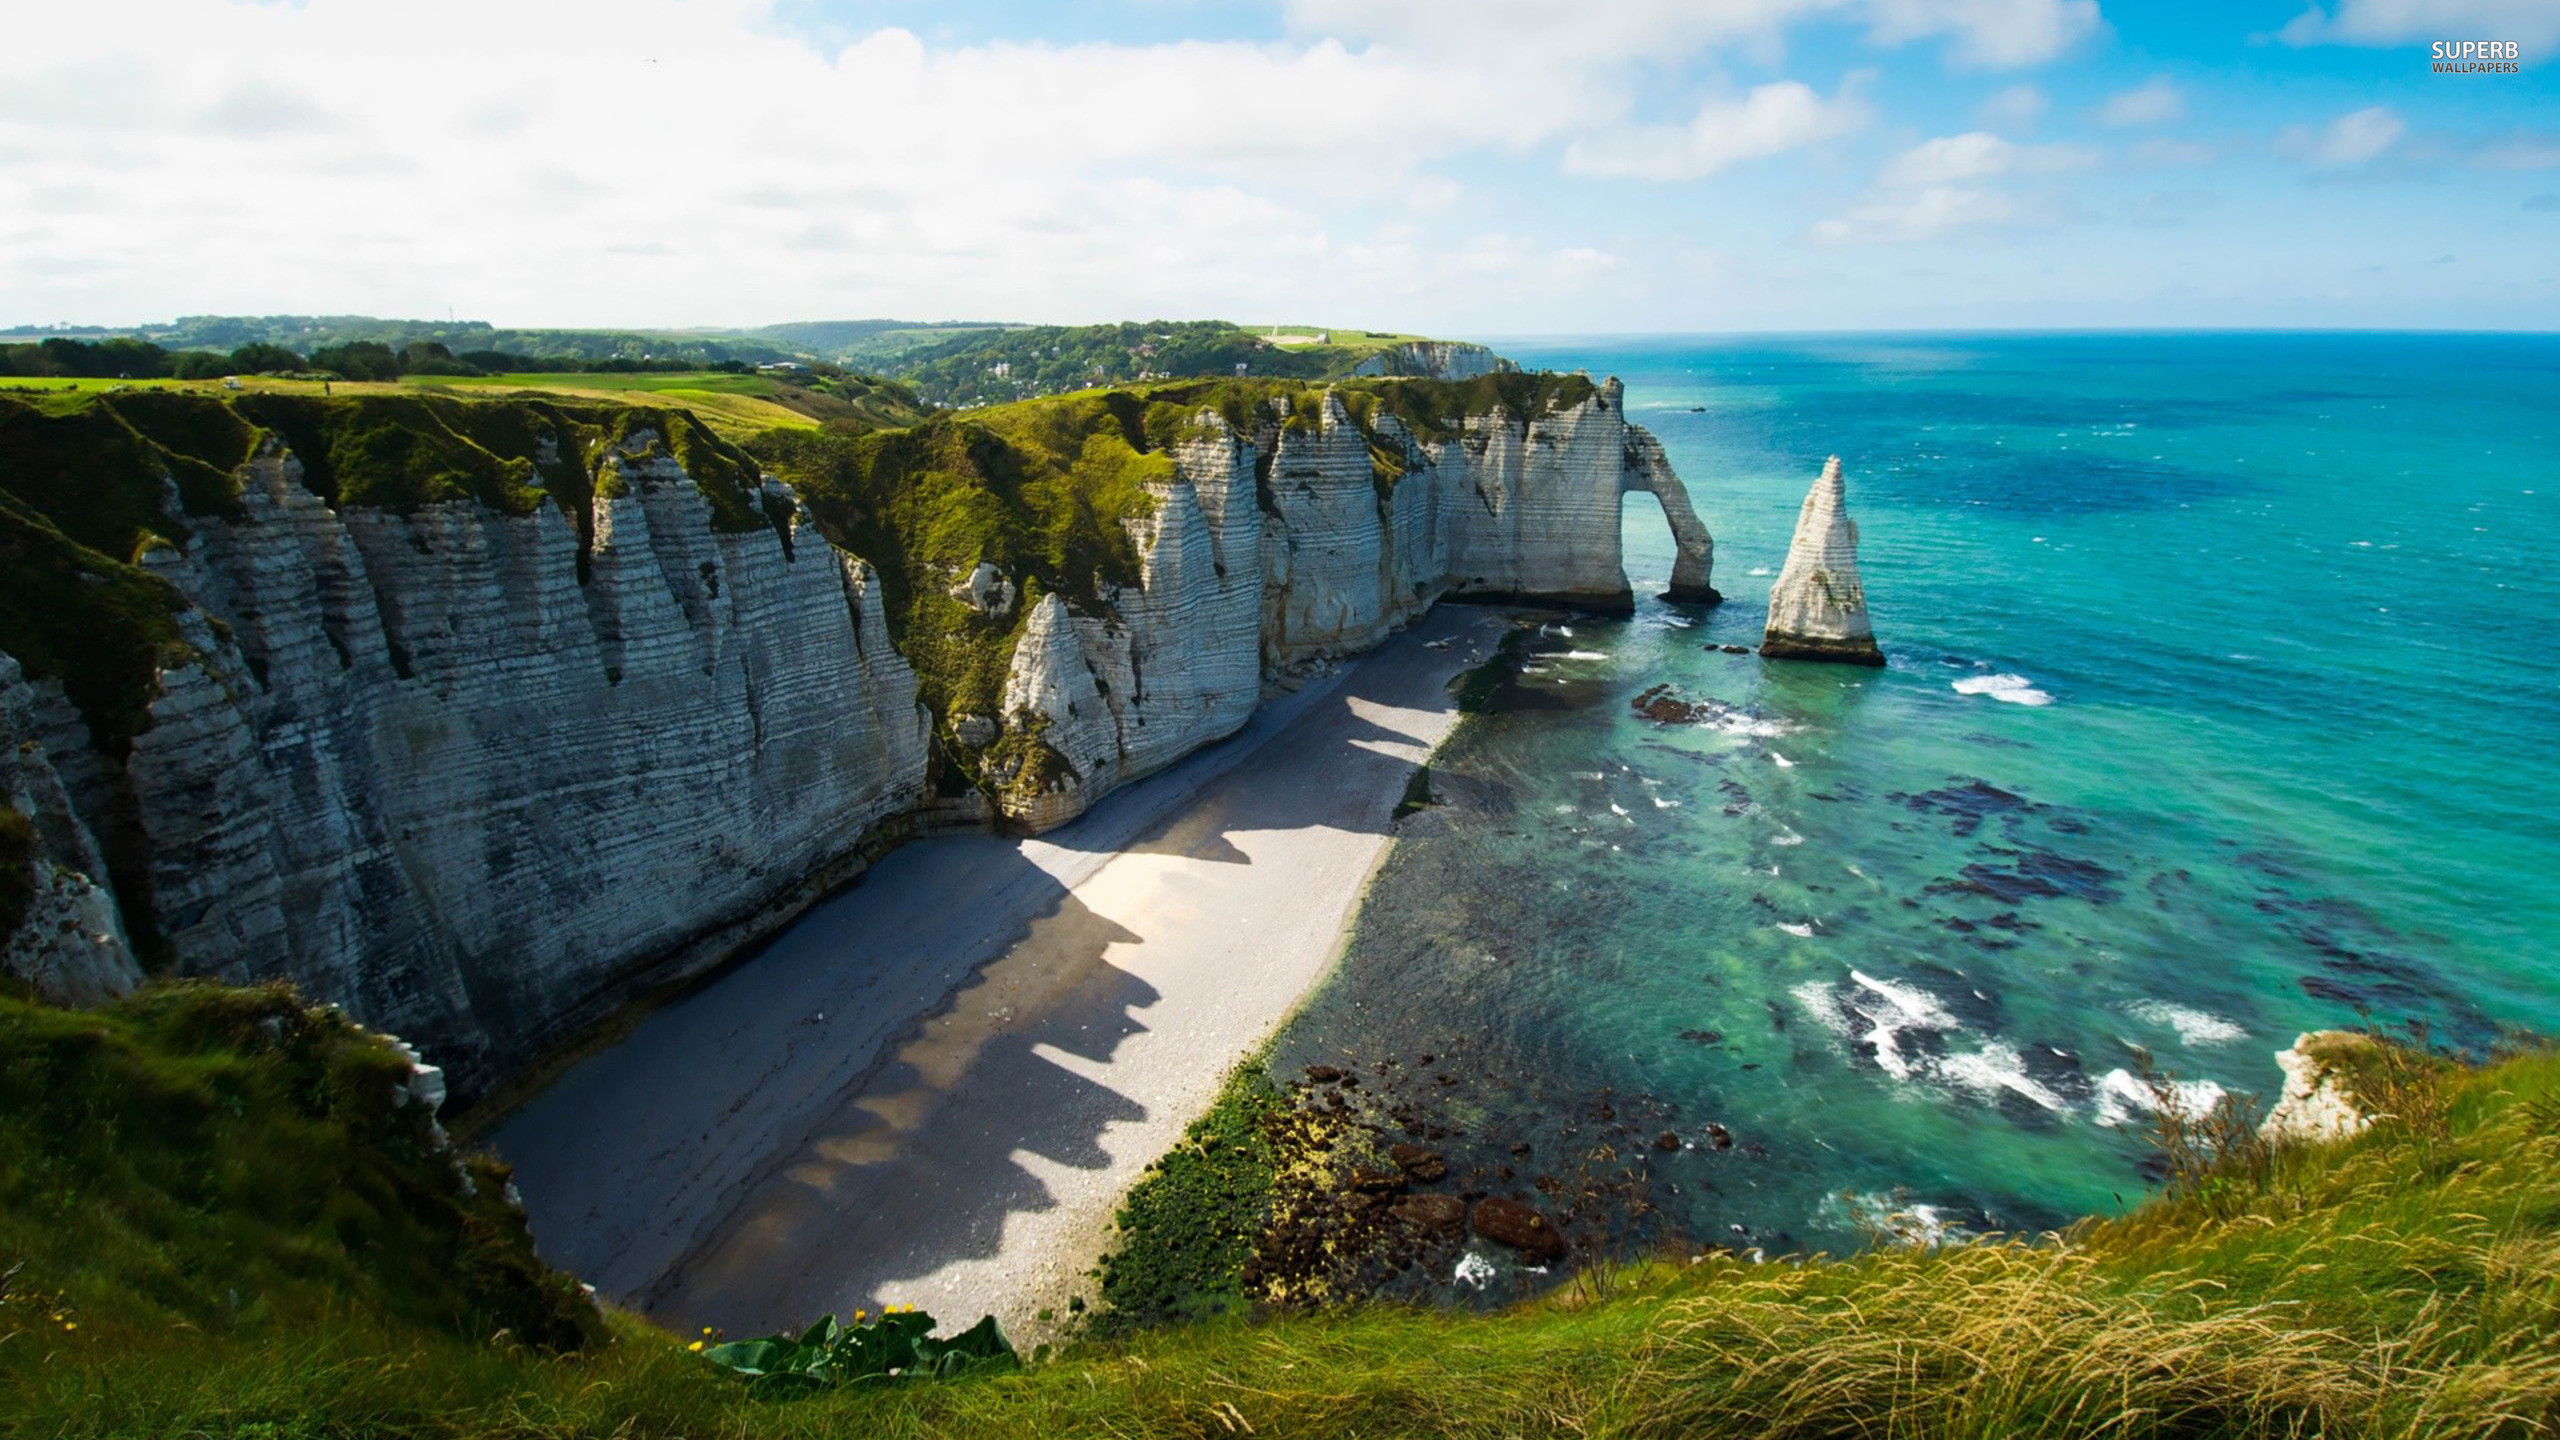 Top 10 Most Amazing Places To Visit In The World